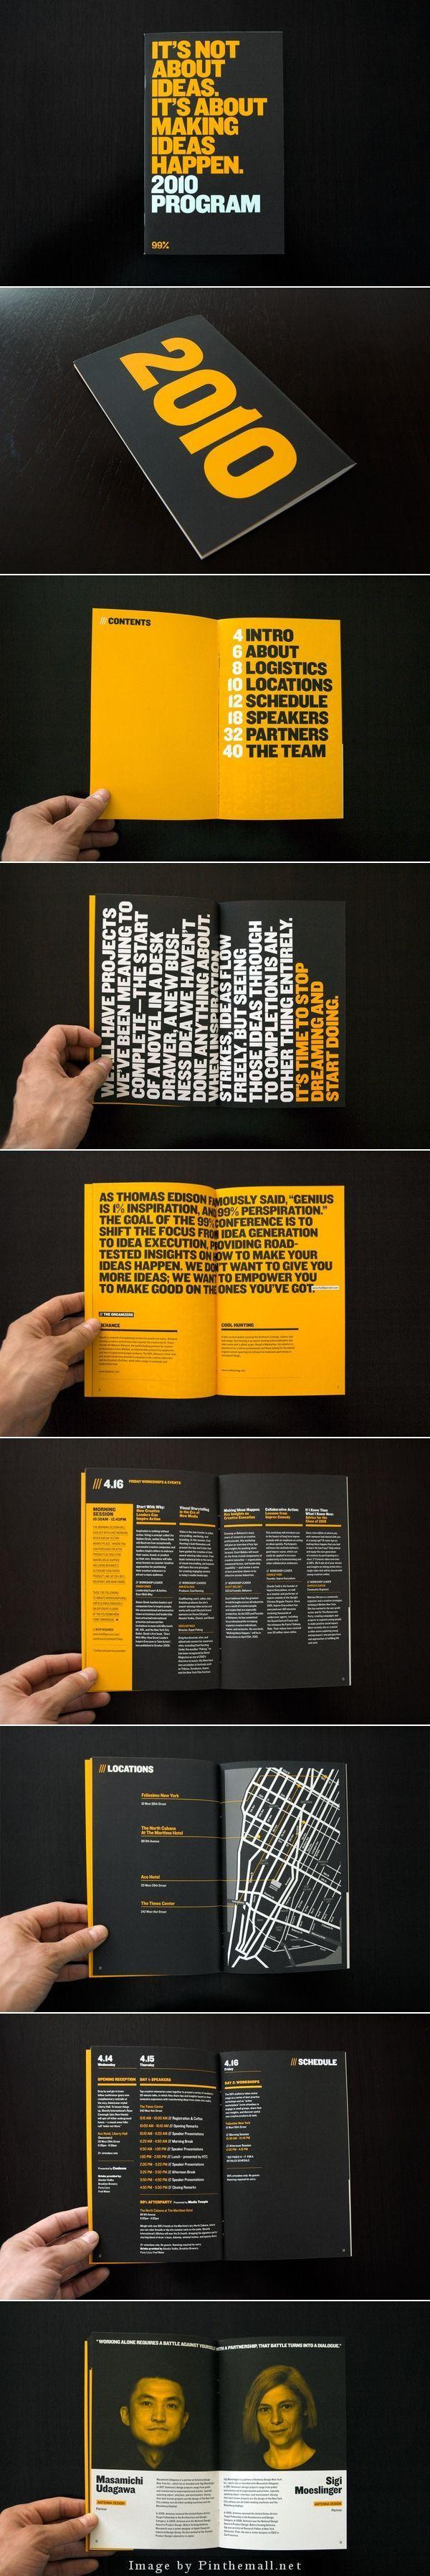 (200) 99% Conference 2010: Branded Materials | Editorial Design | Pinterest